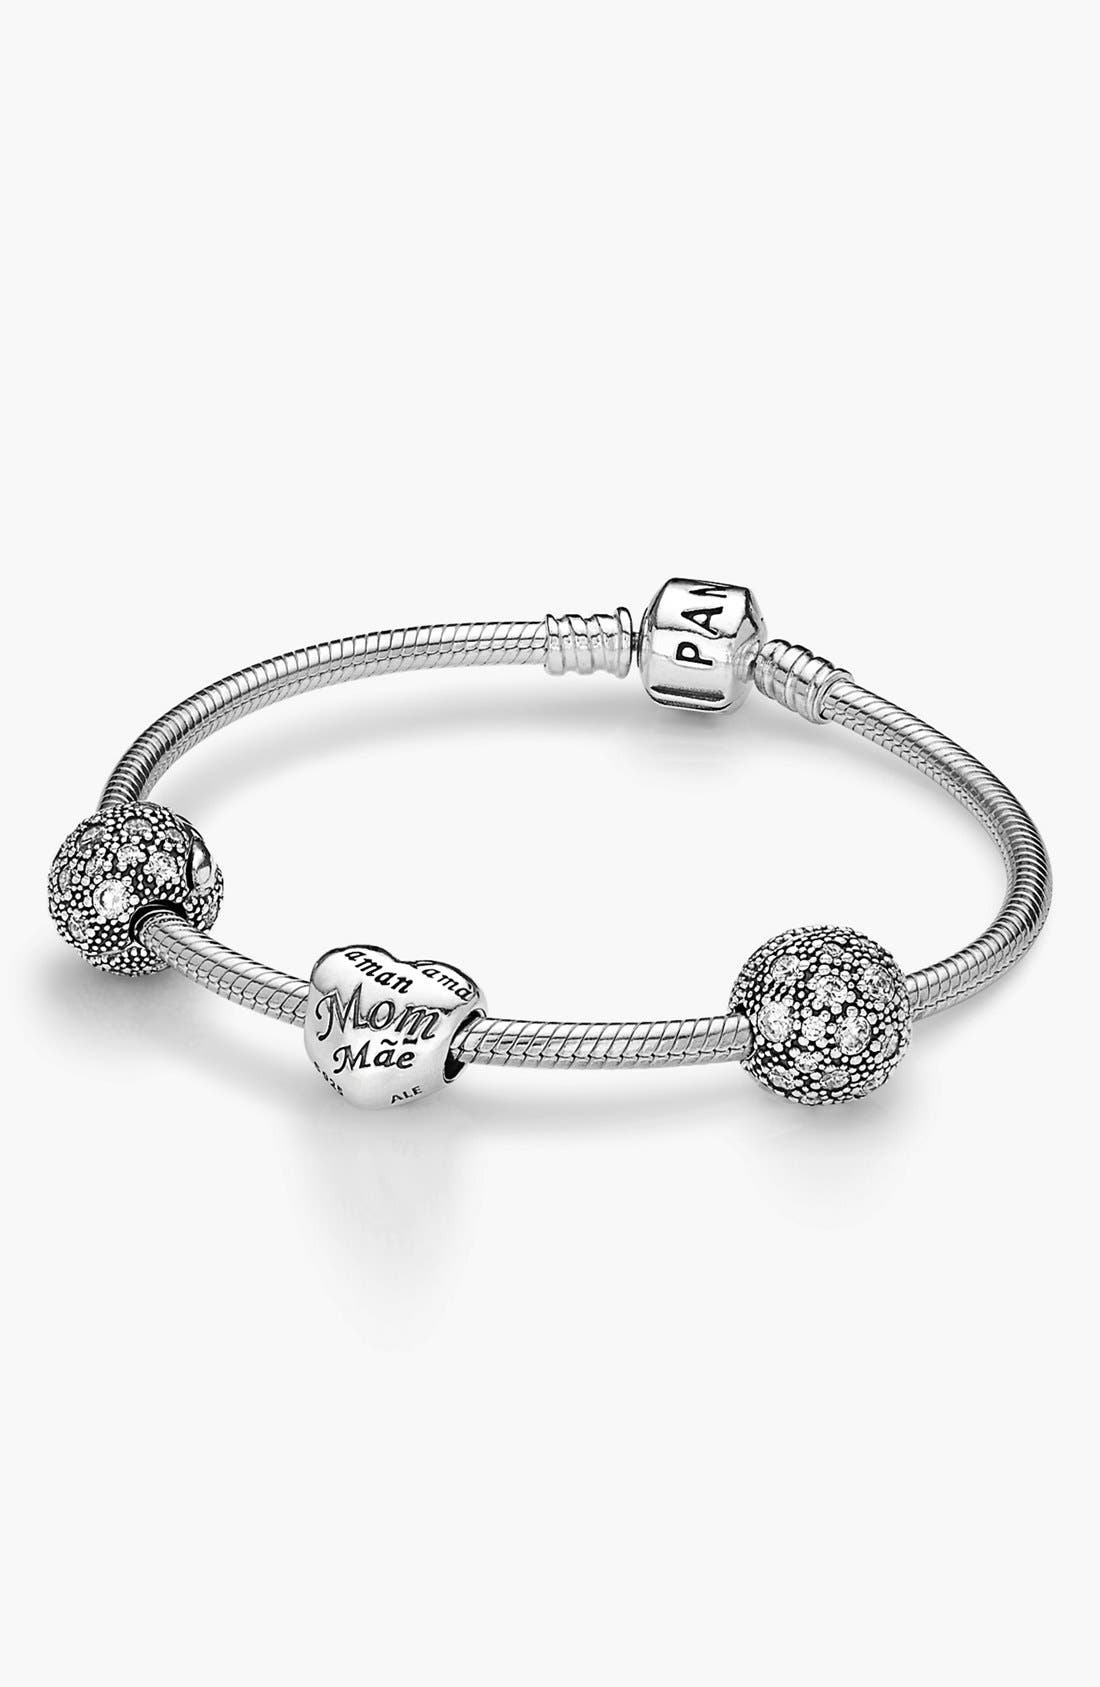 Main Image - PANDORA 'Forever in My Heart' Boxed Charm Bracelet Set ($250 Value)